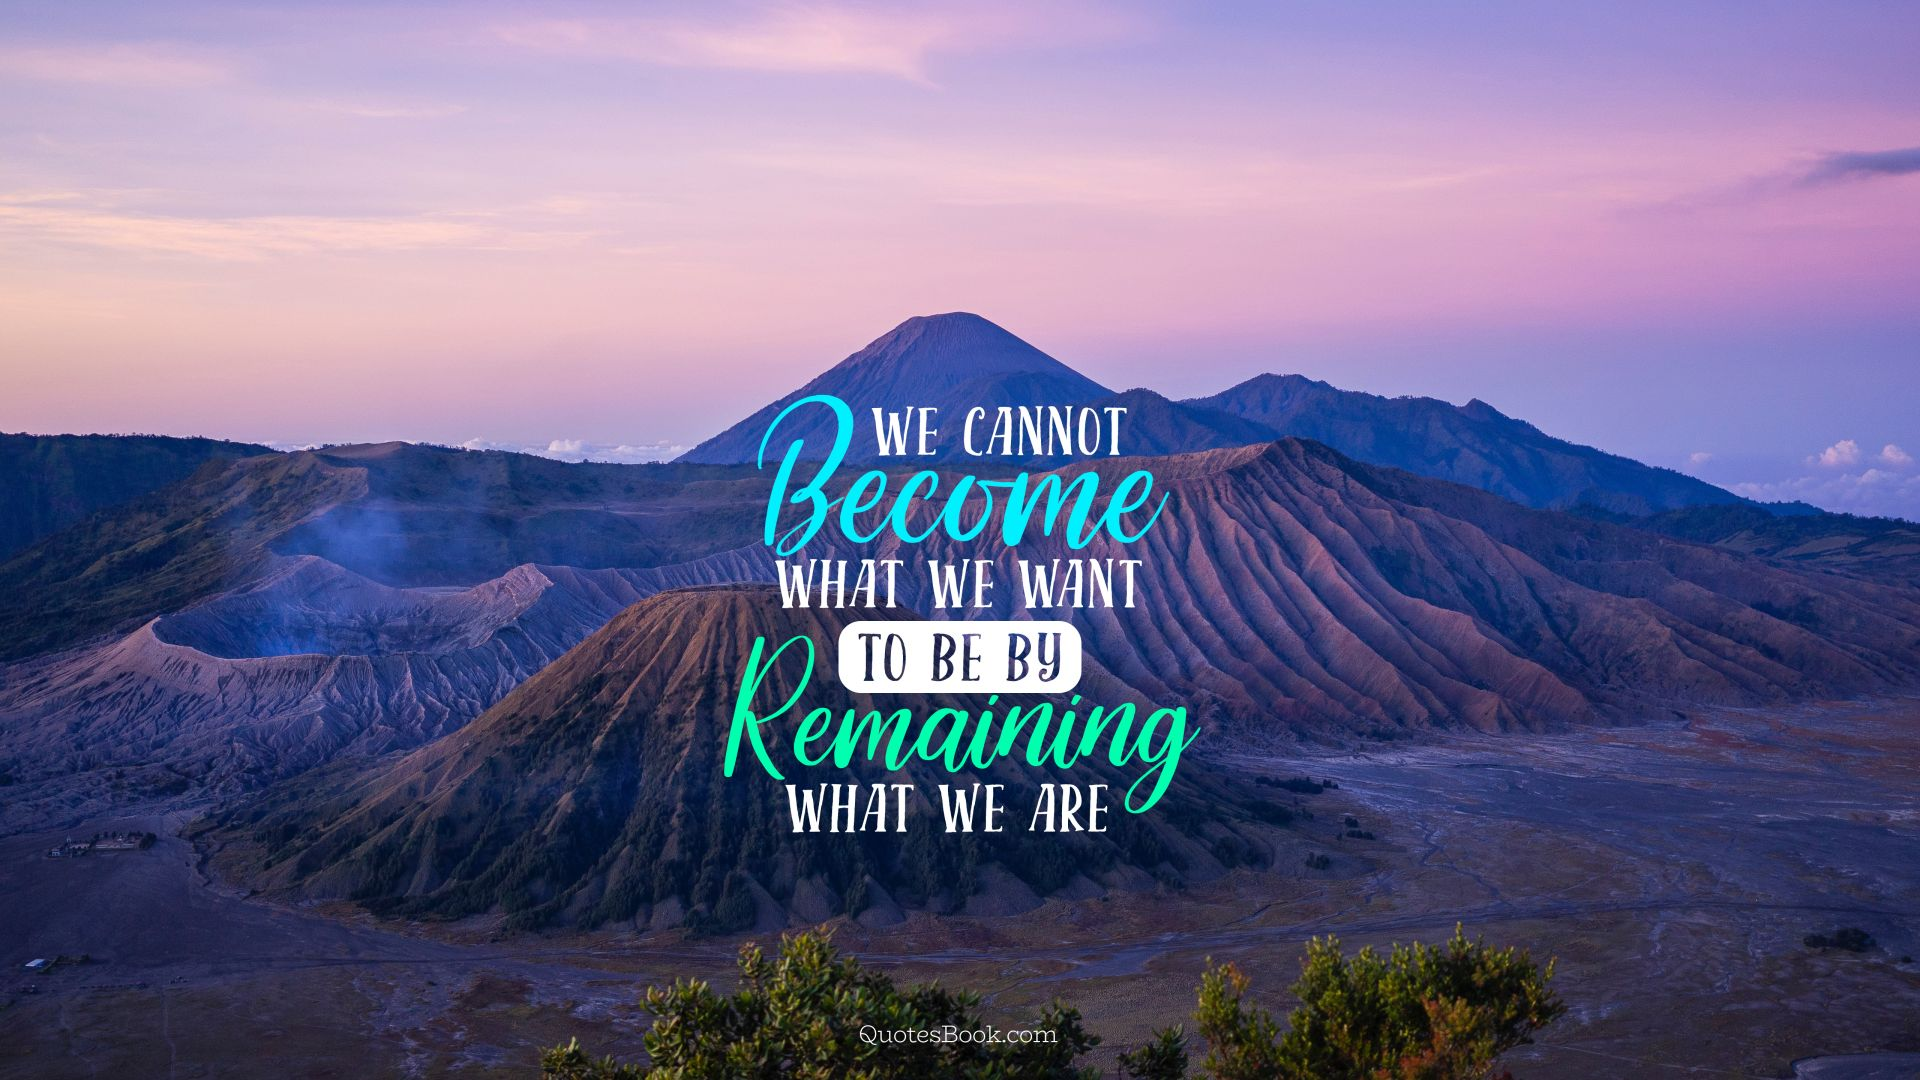 We cannot become what we want to be by remaining what we are